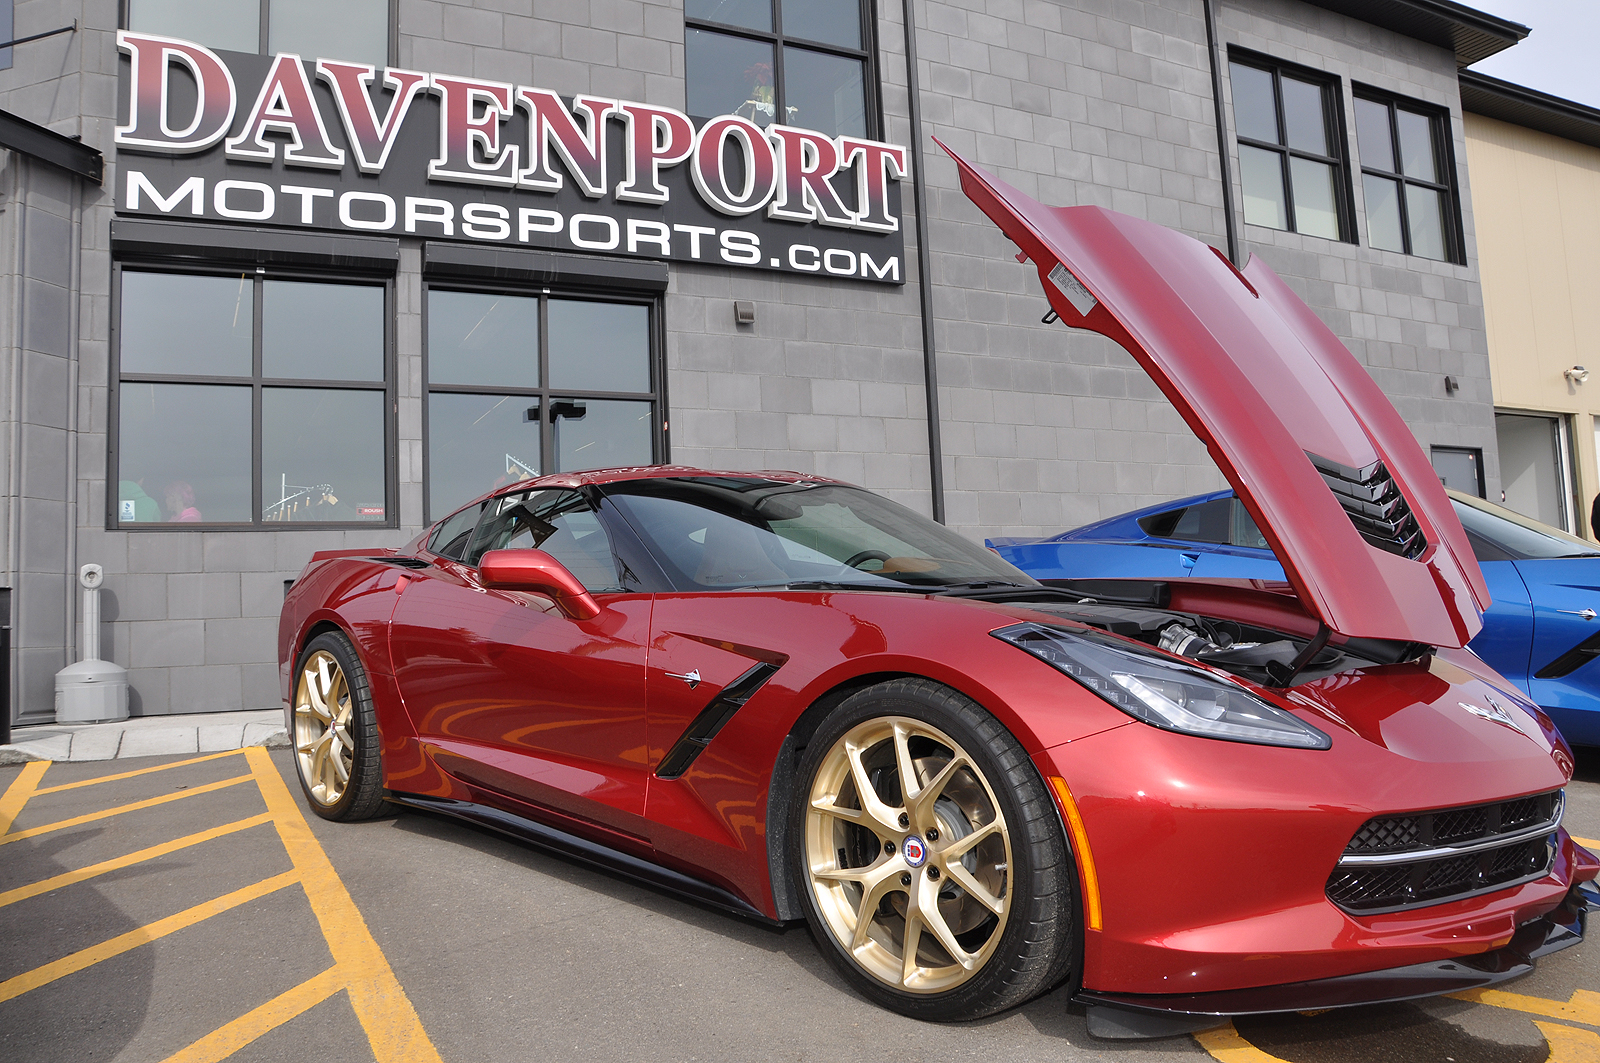 Recently Davenport Motorsports Held An Open House To Showcase Their State Of The Art And Allow Customers Fans Get A Glimpse